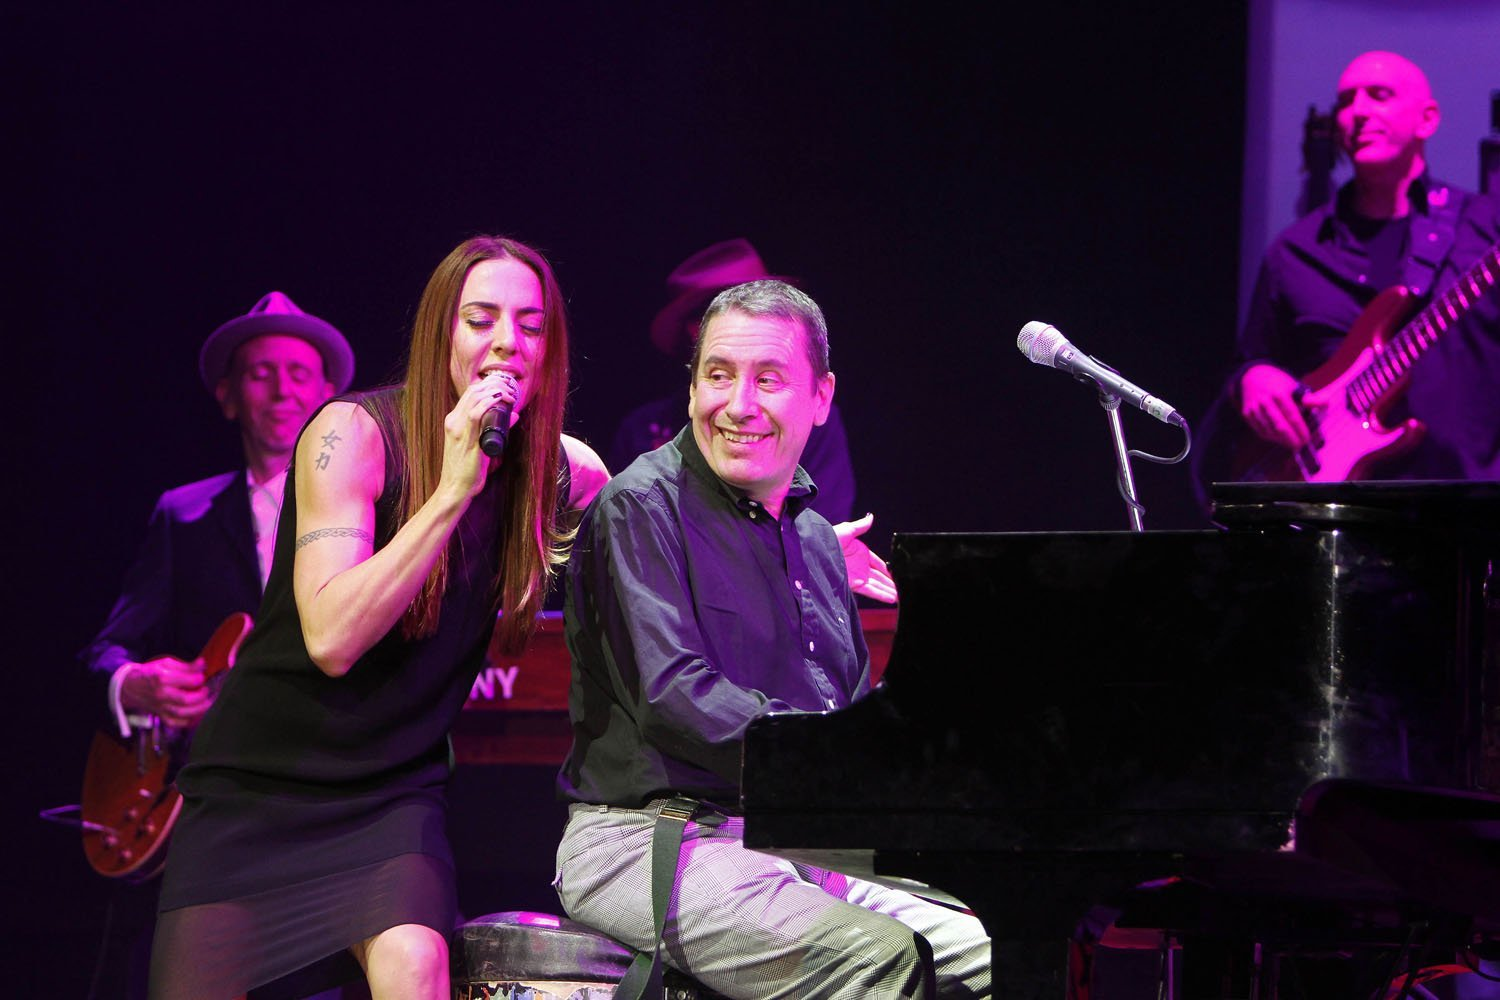 Jools Holland with Mel C @ Plymouth Pavilions 20th December 2013 - www.leapimages.co.uk